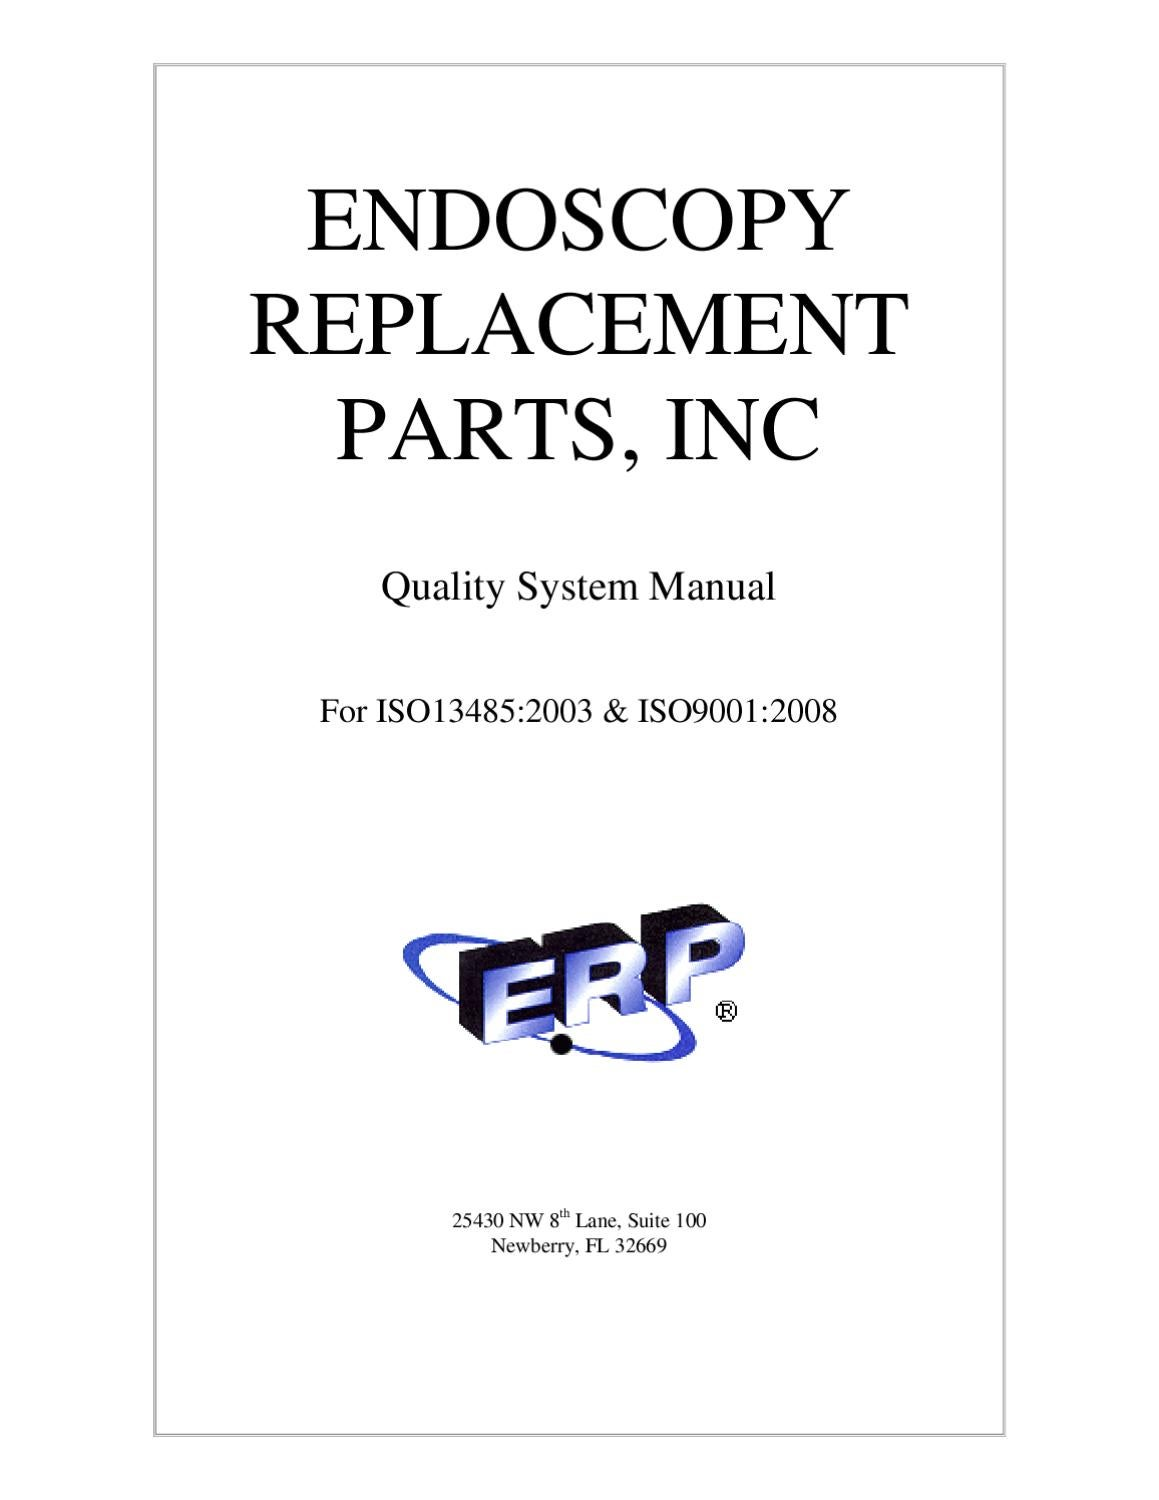 Endoscopy Suite Design: ERPI ISO 13485/9001 QMS By Endoscopy Replacement Parts